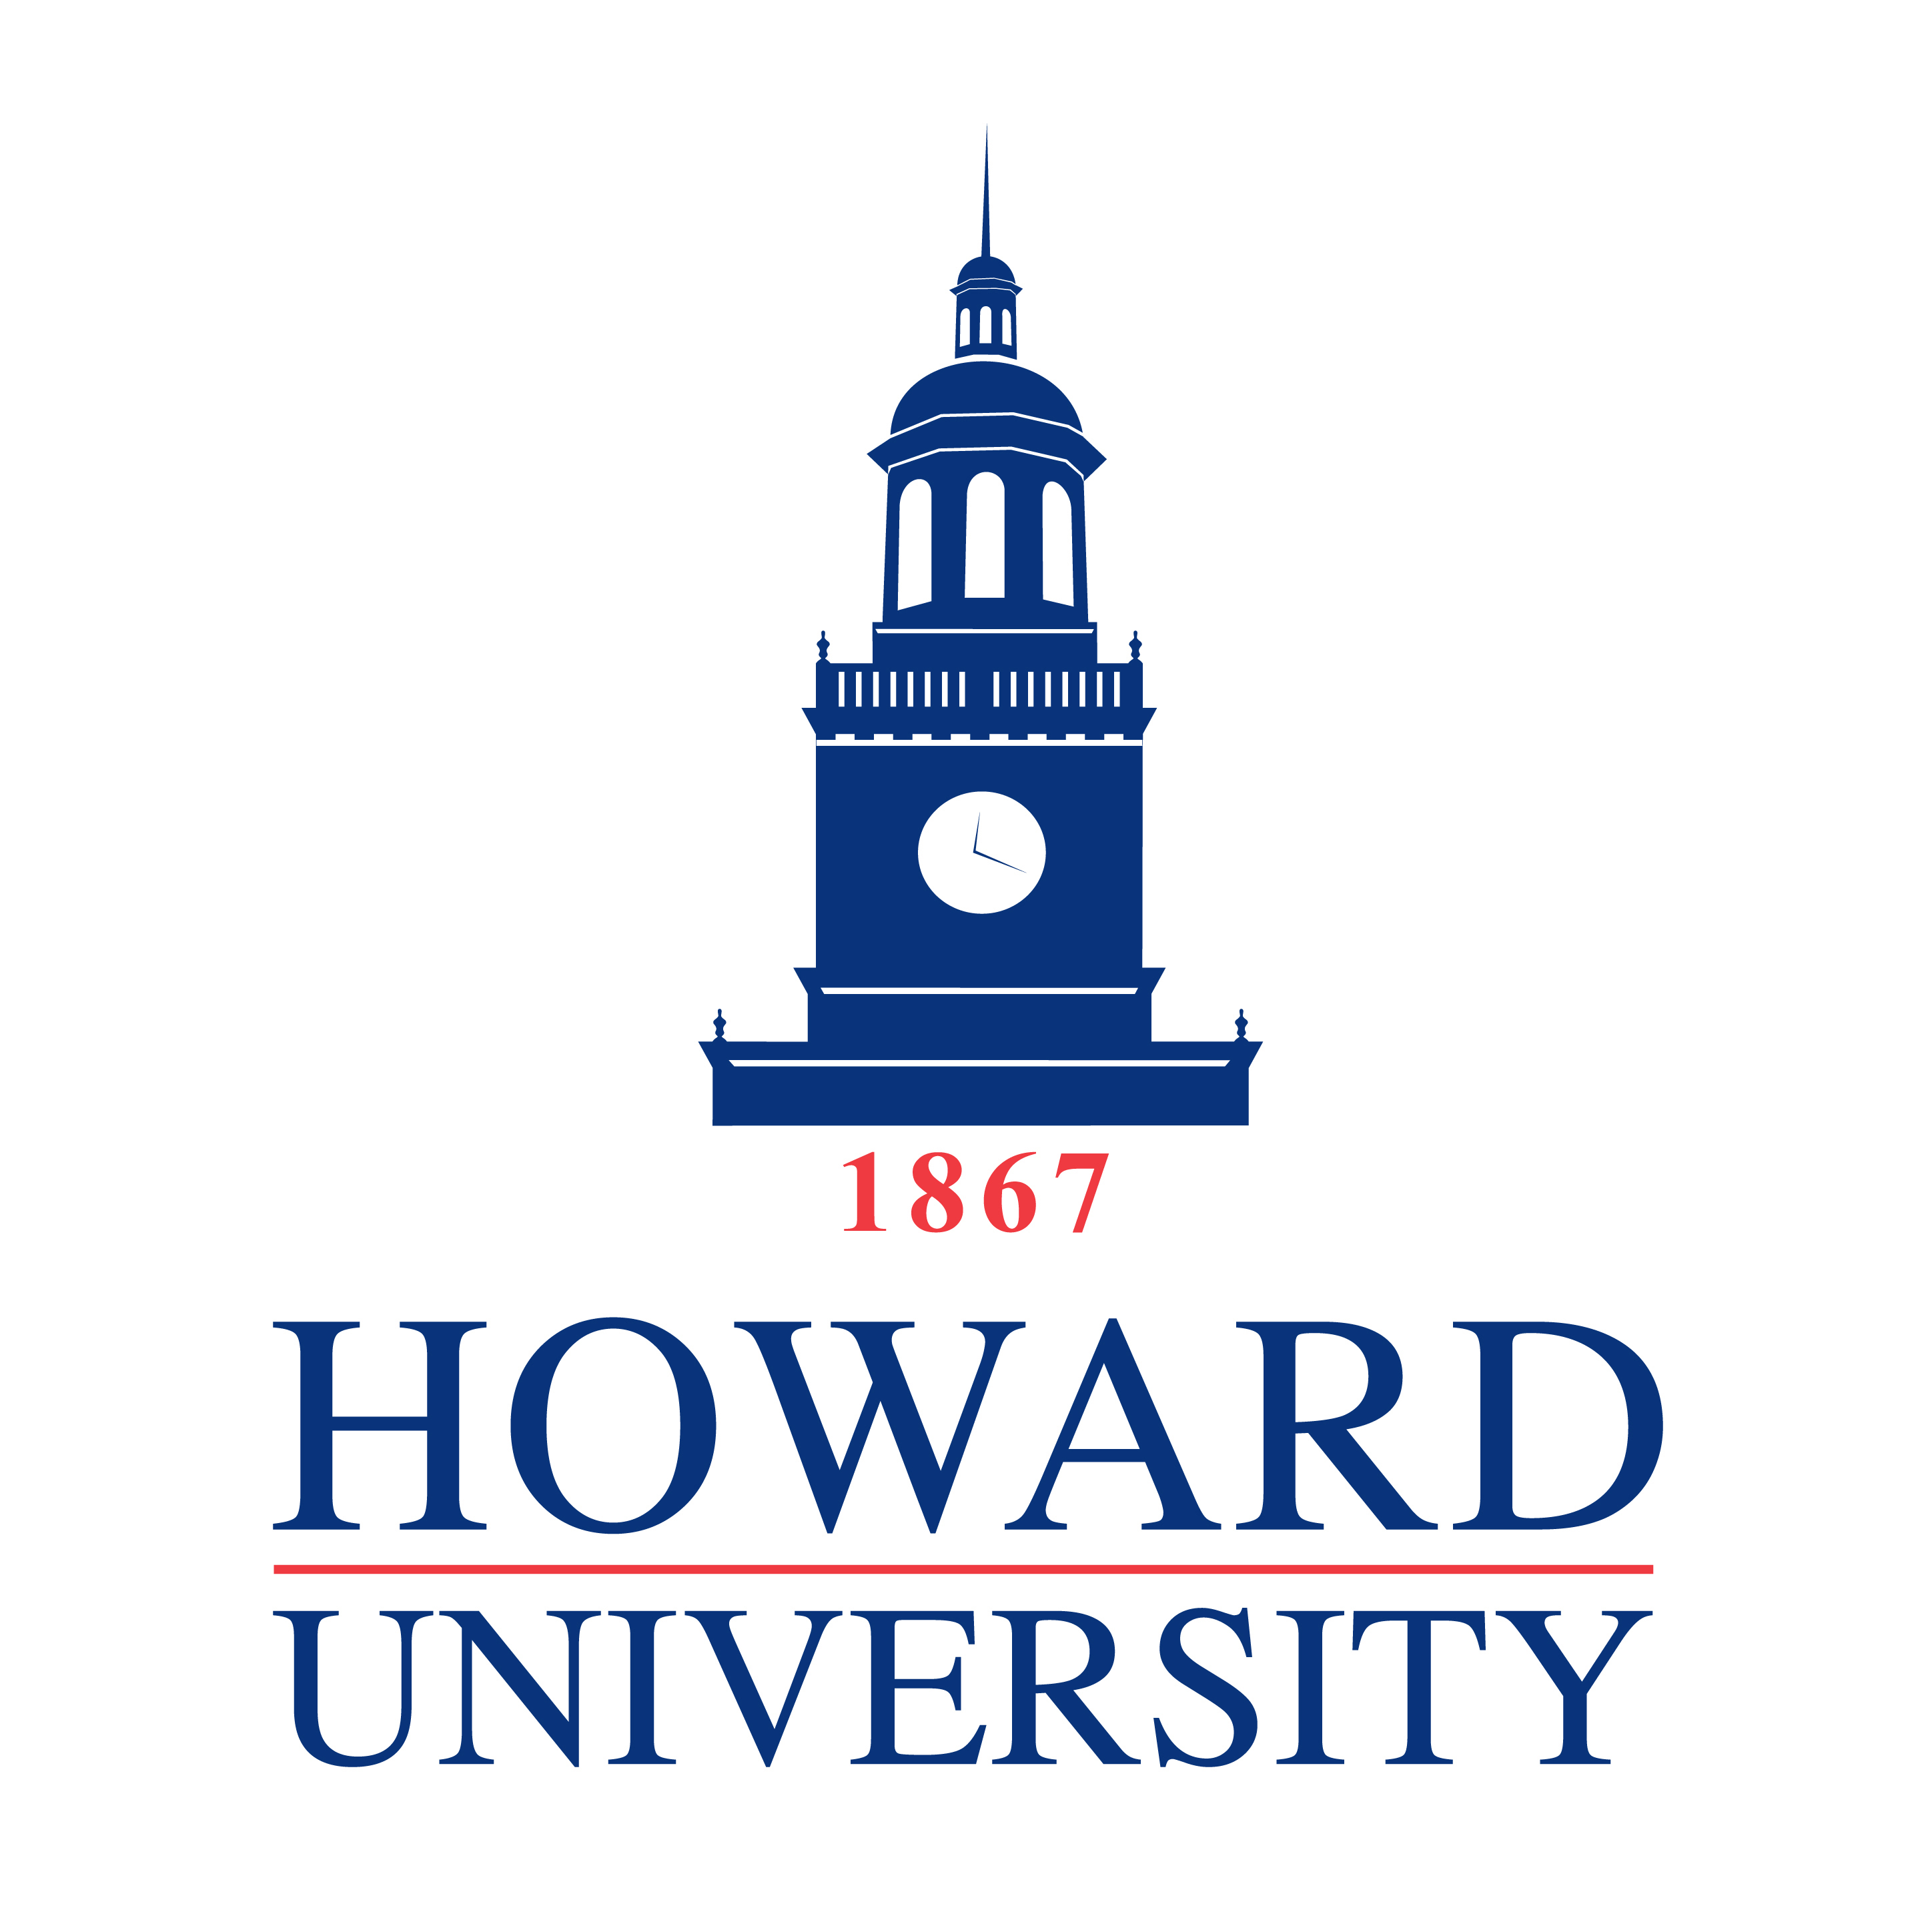 Howard University's 148th Commencement Convocation